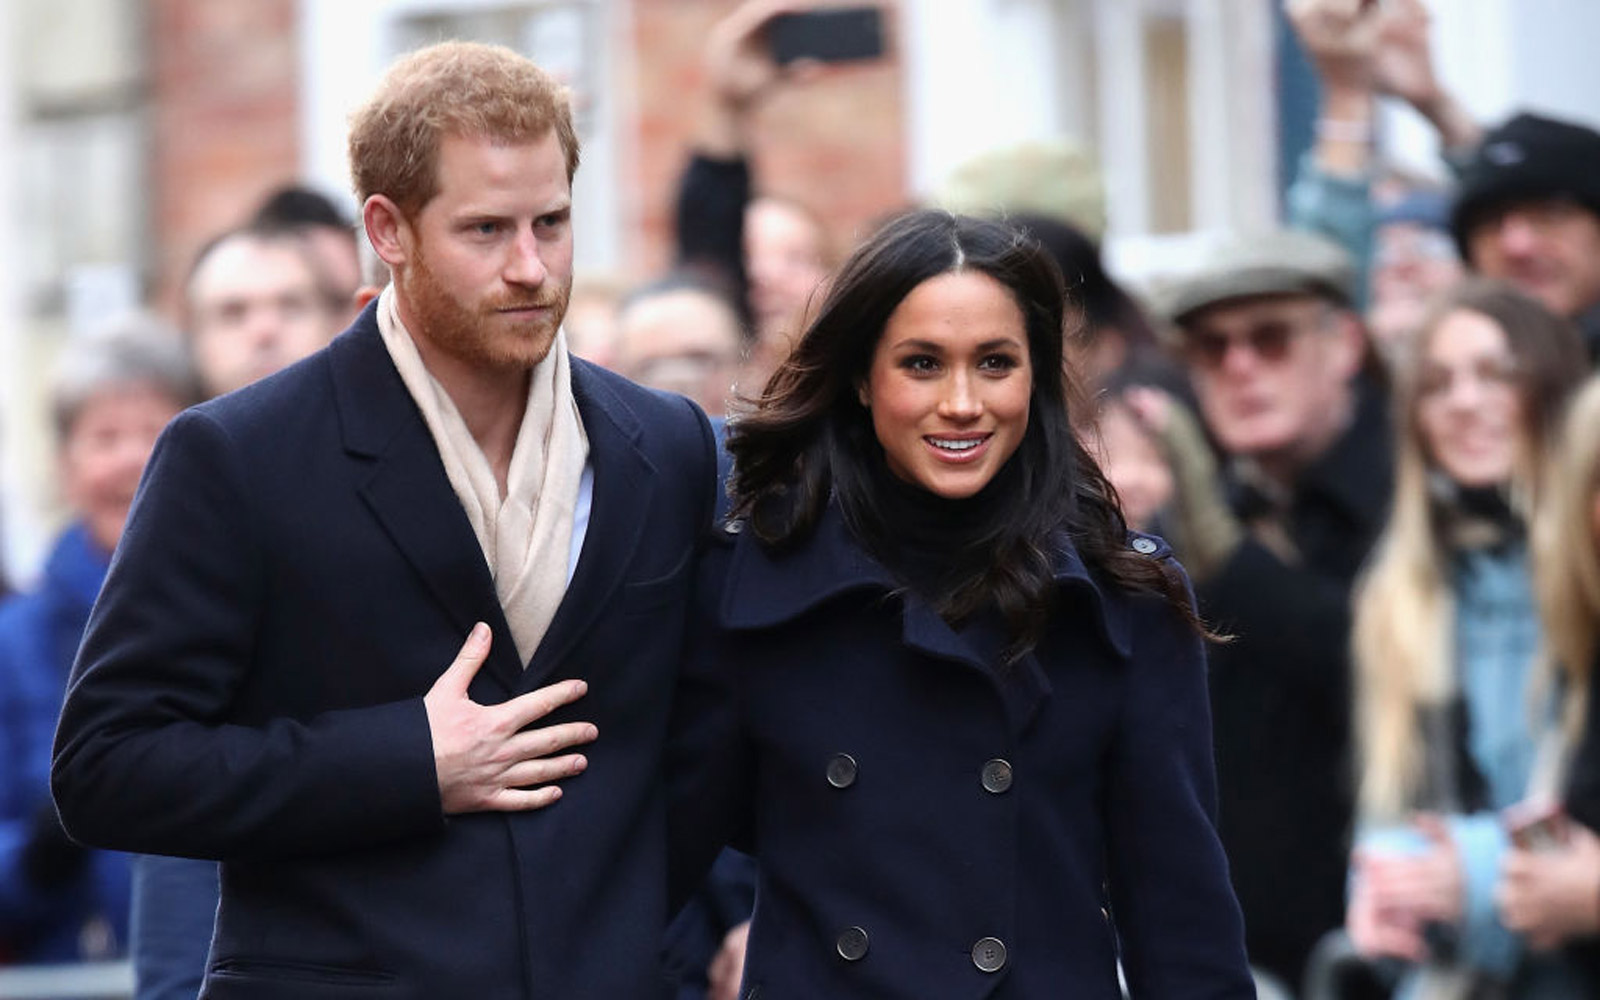 Prince Harry and Meghan Markle attends the Terrance Higgins Trust World AIDS Day charity fair at Nottingham Contemporary on December 1, 2017 in Nottingham, England